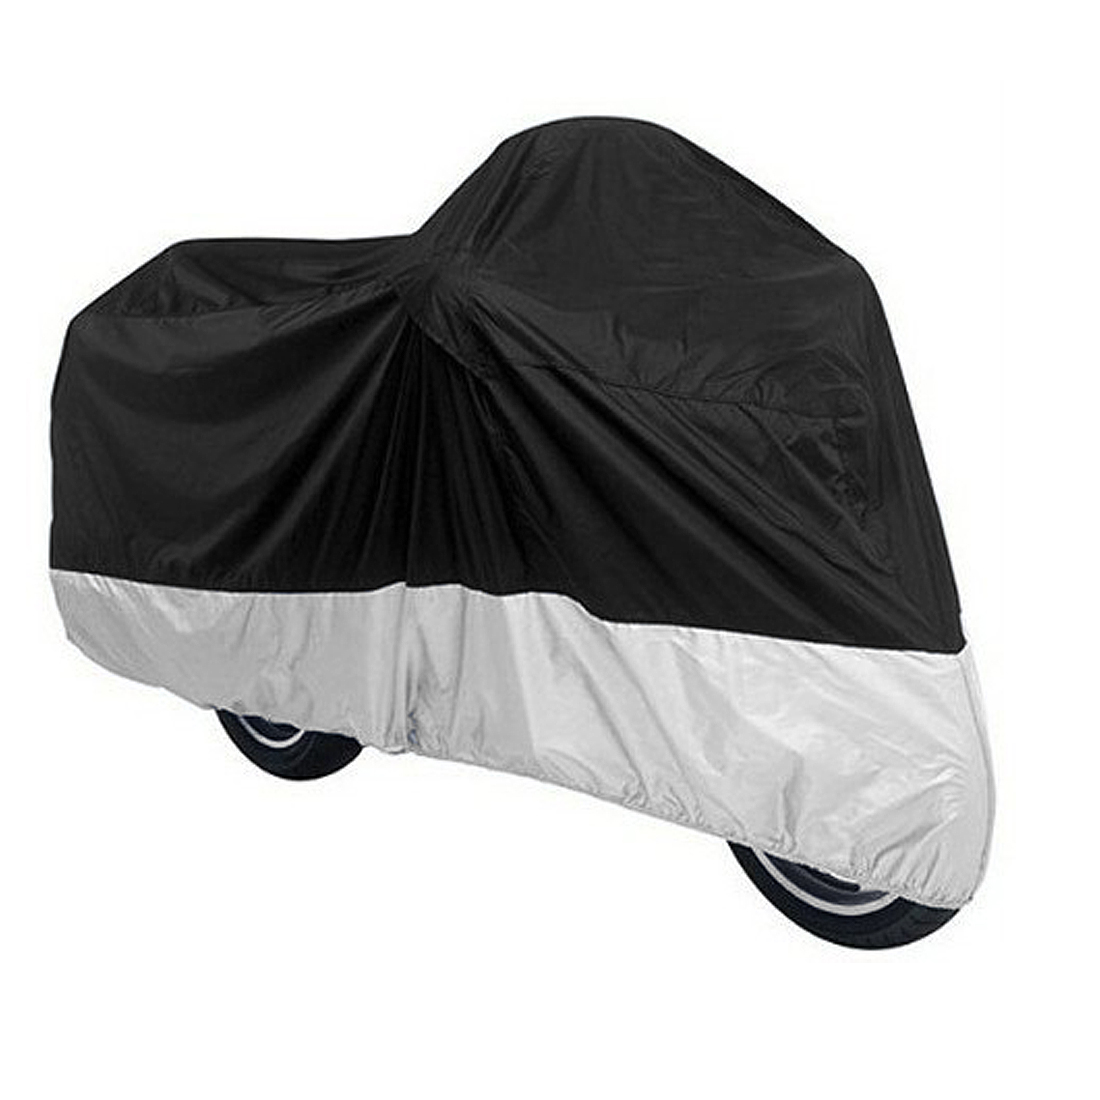 Motorcycle Cover Outdoor Waterproof Protector For Harley Davidson Silver Black